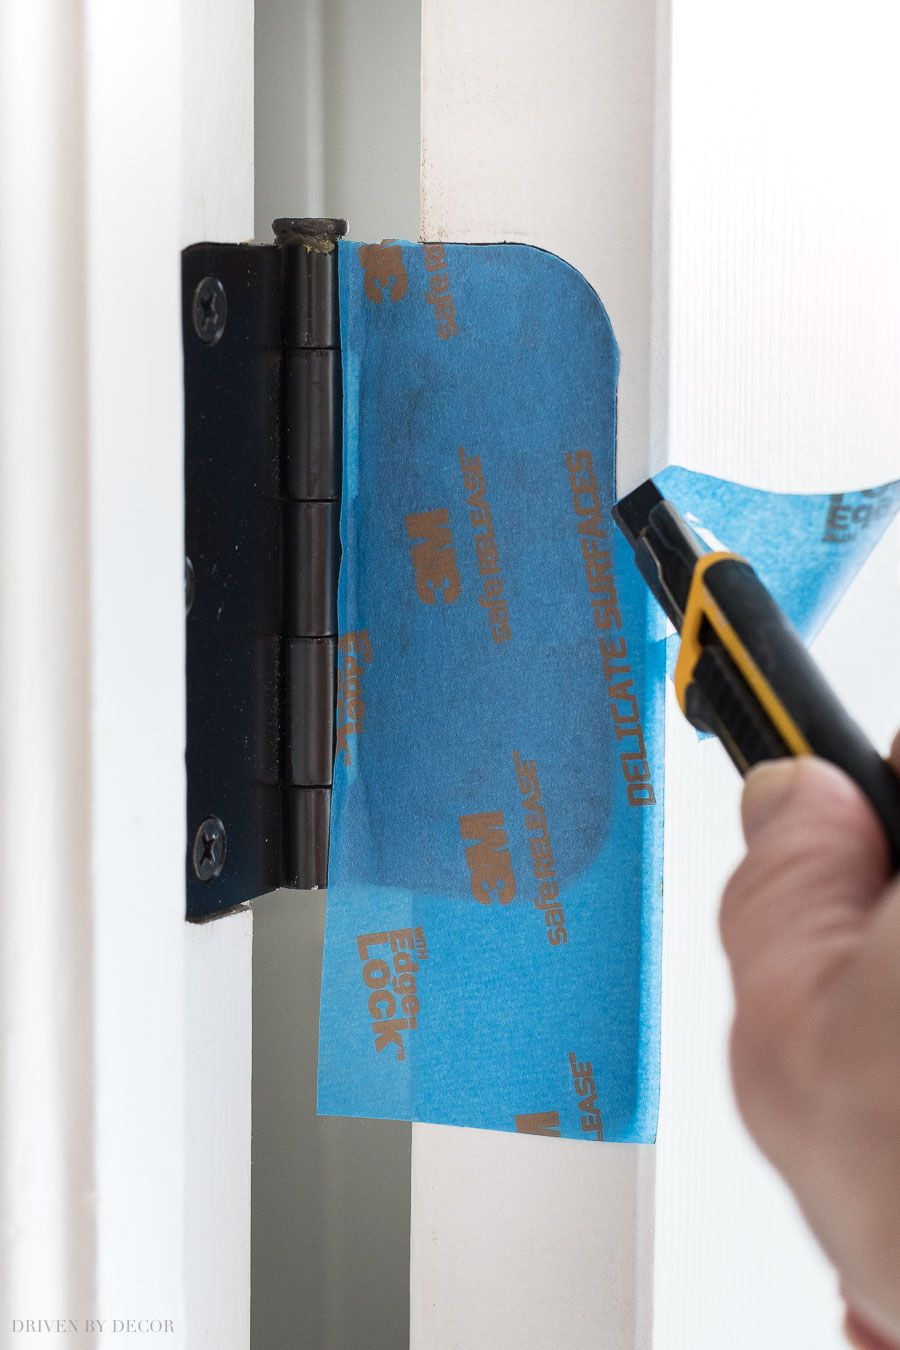 How To Paint A Door My Best Tips For Painting Interior Doors Driven By Decor In 2020 Painted Interior Doors Painted Doors Doors Interior